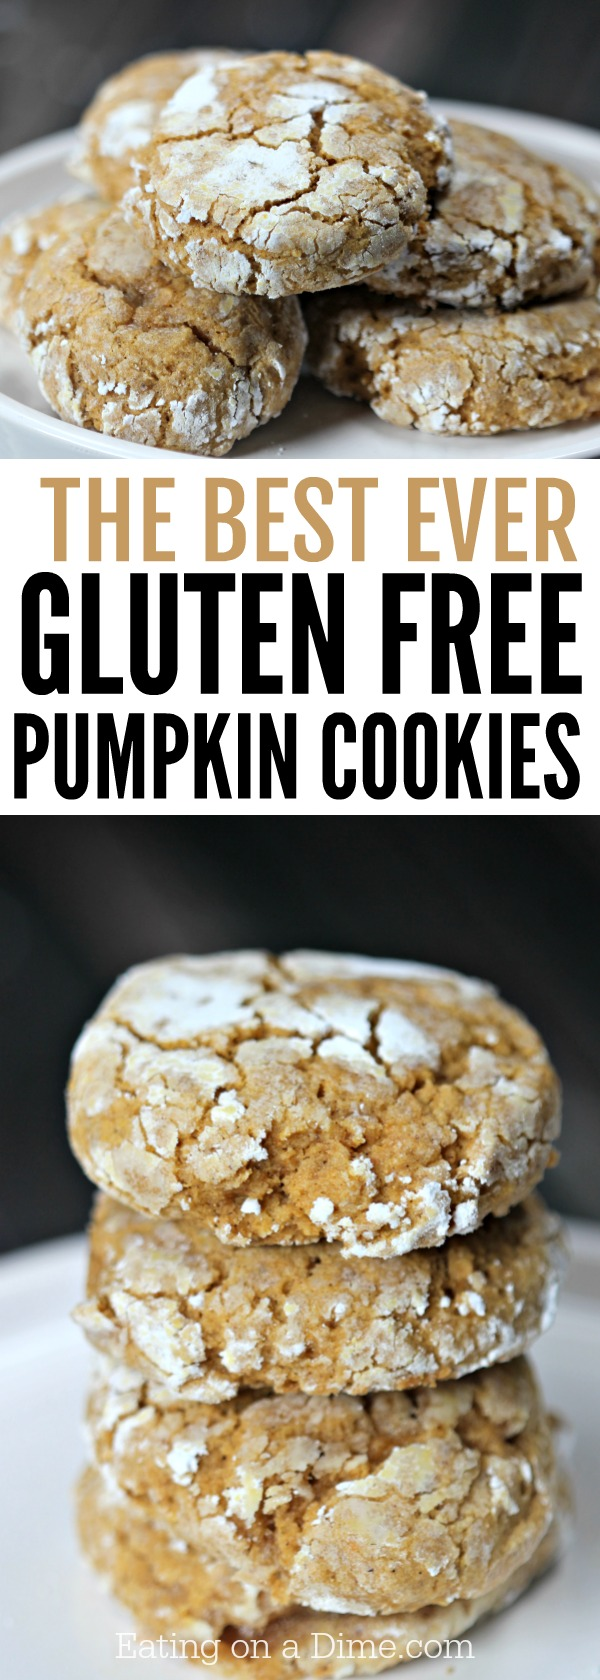 Get all the instructions here for gluten free pumpkin cookies recipe. They are so good that no one will notice it doesn't include gluten. So easy!